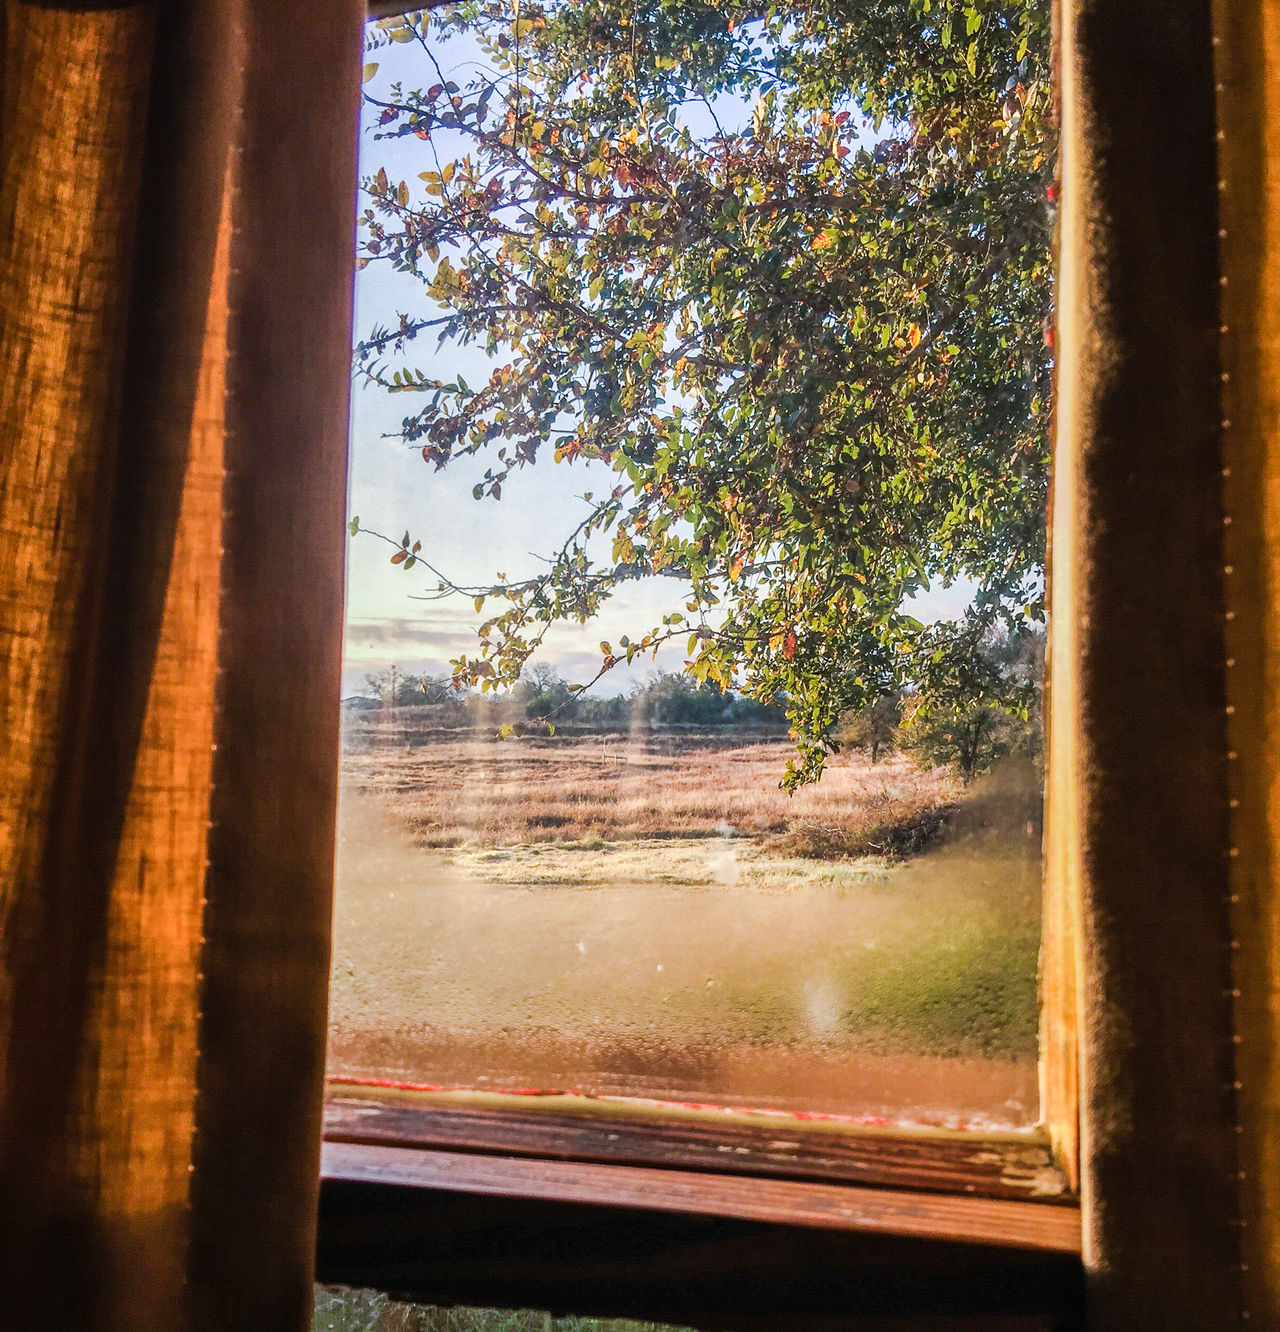 Cabin Country Country Life German Good Morning Good Morning Sunshine Hill Country Hipster Mornin Morning Morning Light Morning Rituals Morning Sun Rural Rural America Rural Life Rustic Scenics Sunrise Texas Texas Hill Country Texas Landscape Travel Tree Window